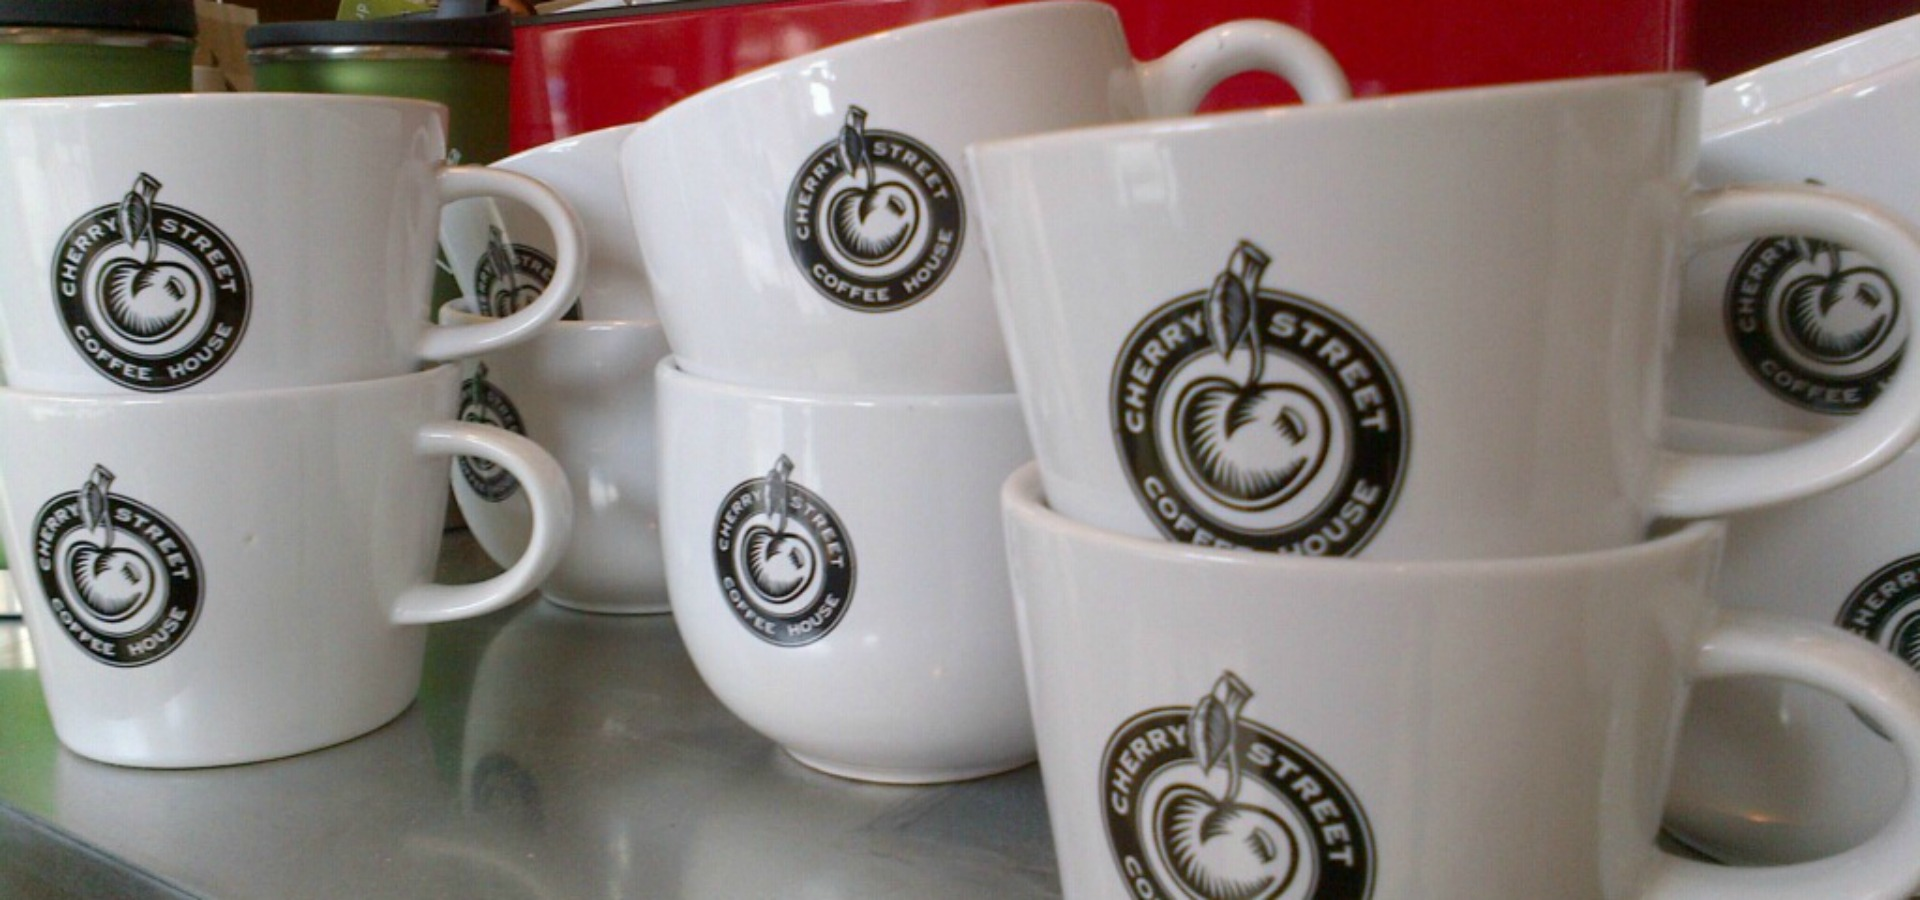 Cherry Street Coffee House - Discover South Lake Union